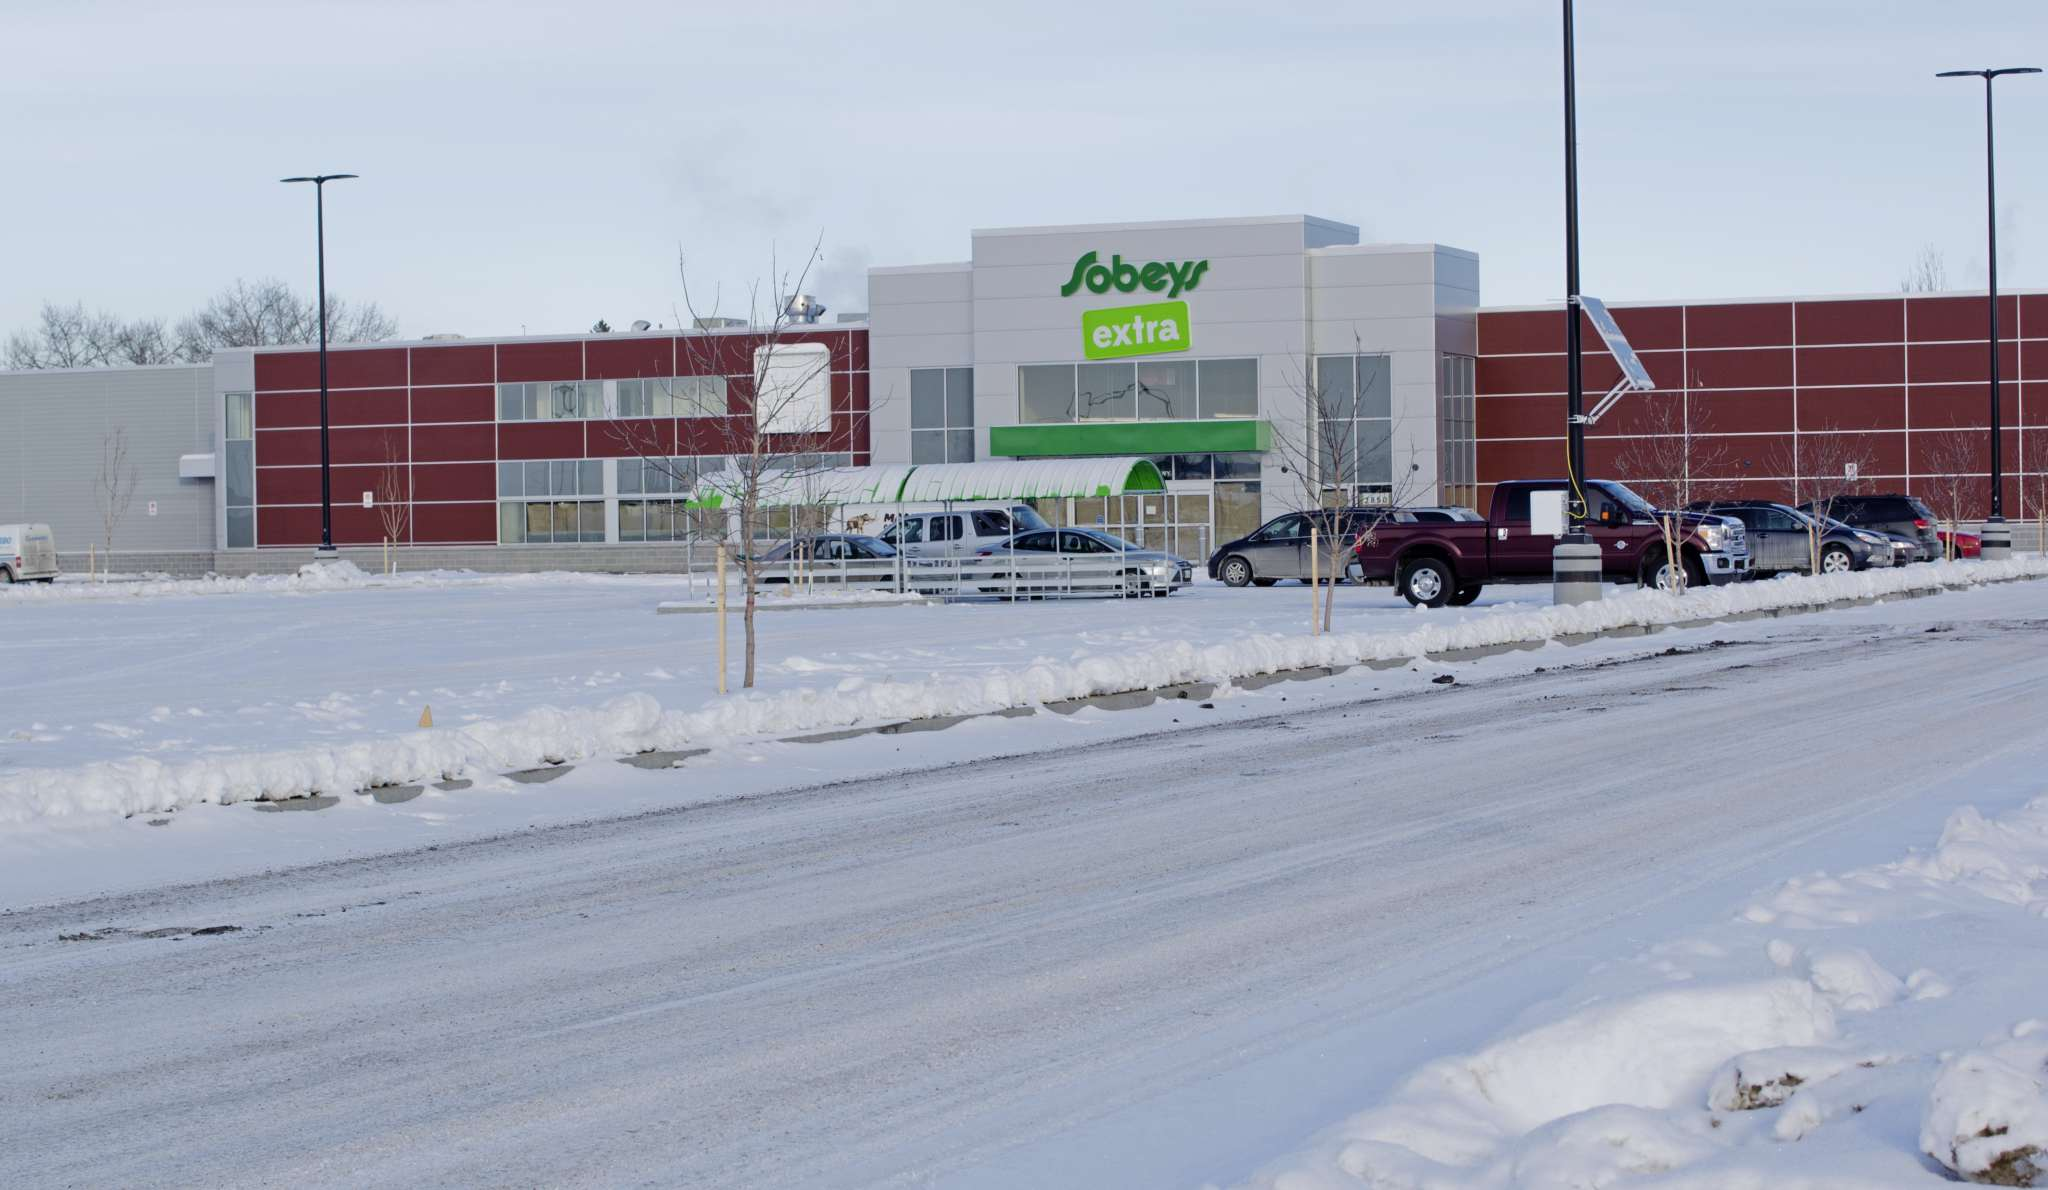 The Sobeys Extra on Pembina Highway will open to customers on Jan. 29.